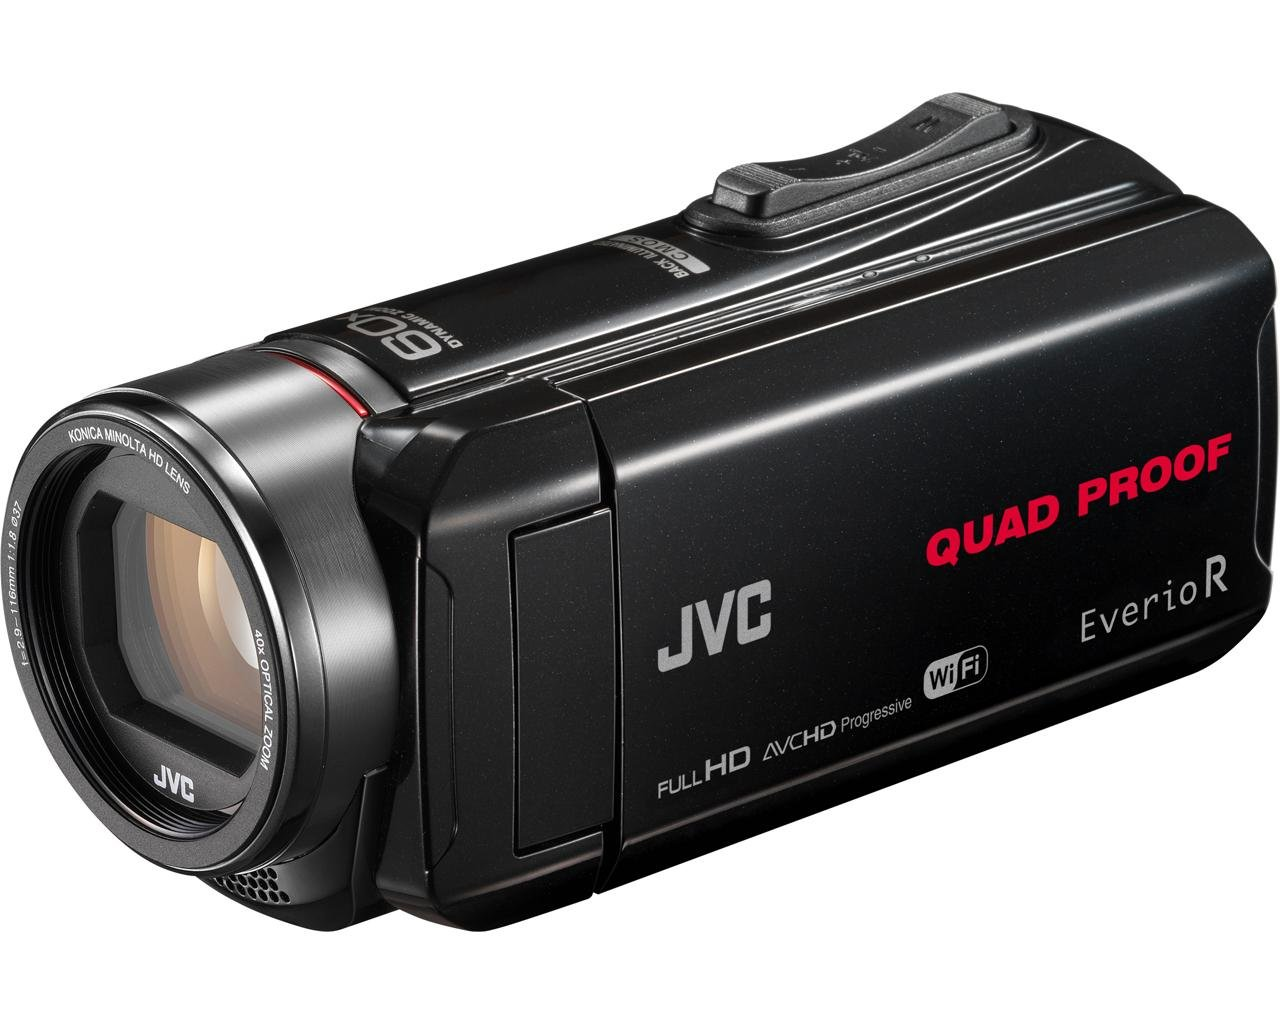 JVC GZ-RX645BEK Quad Proof Full HD Camcorder panasonic hc-x1000 review